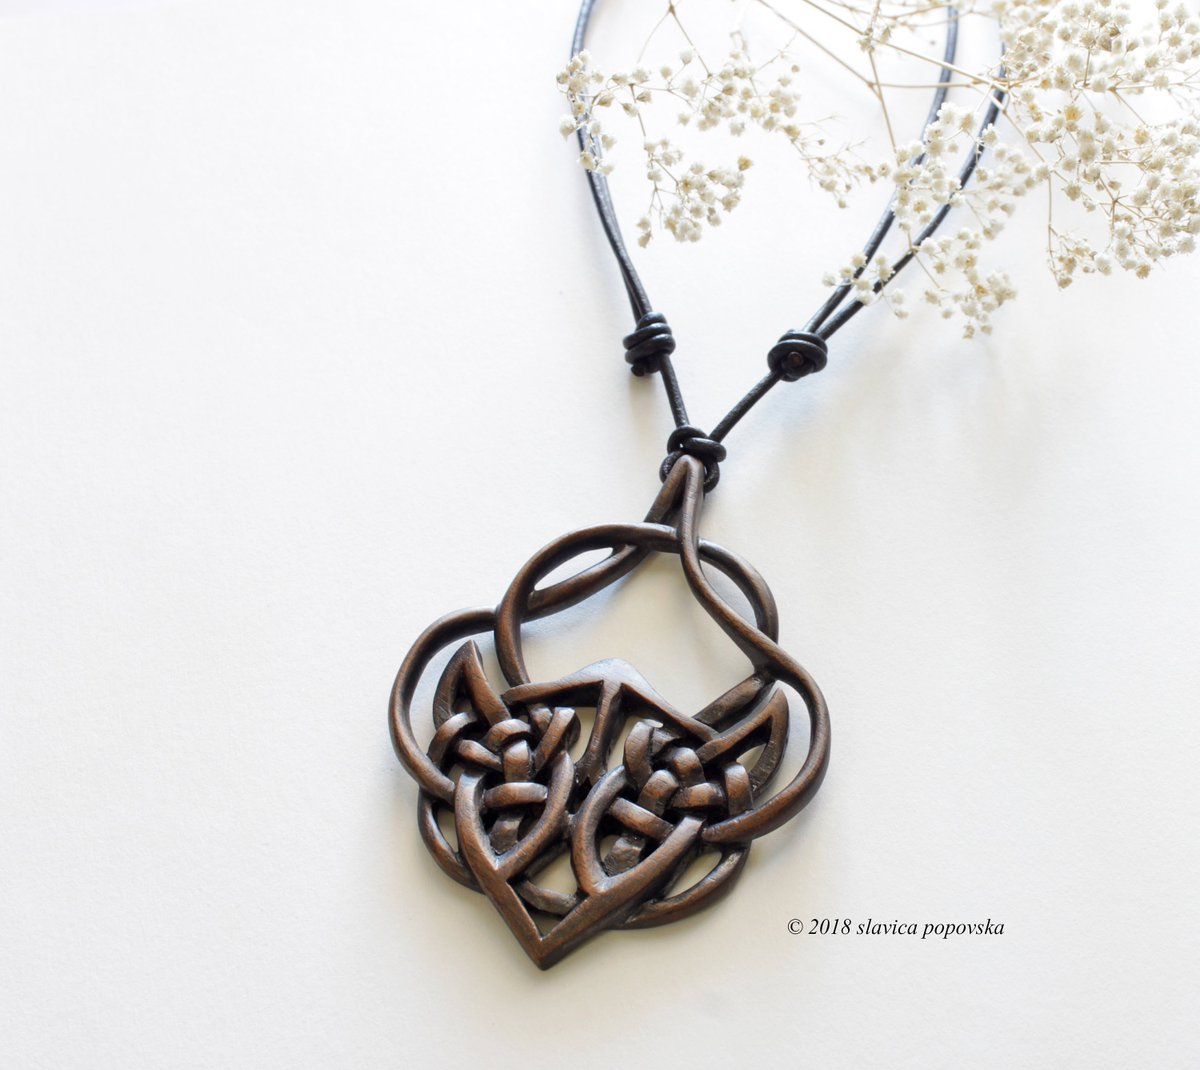 pendant wooden carving abstract ayutribaljewelry crawling necklace style wood products dragon tribal